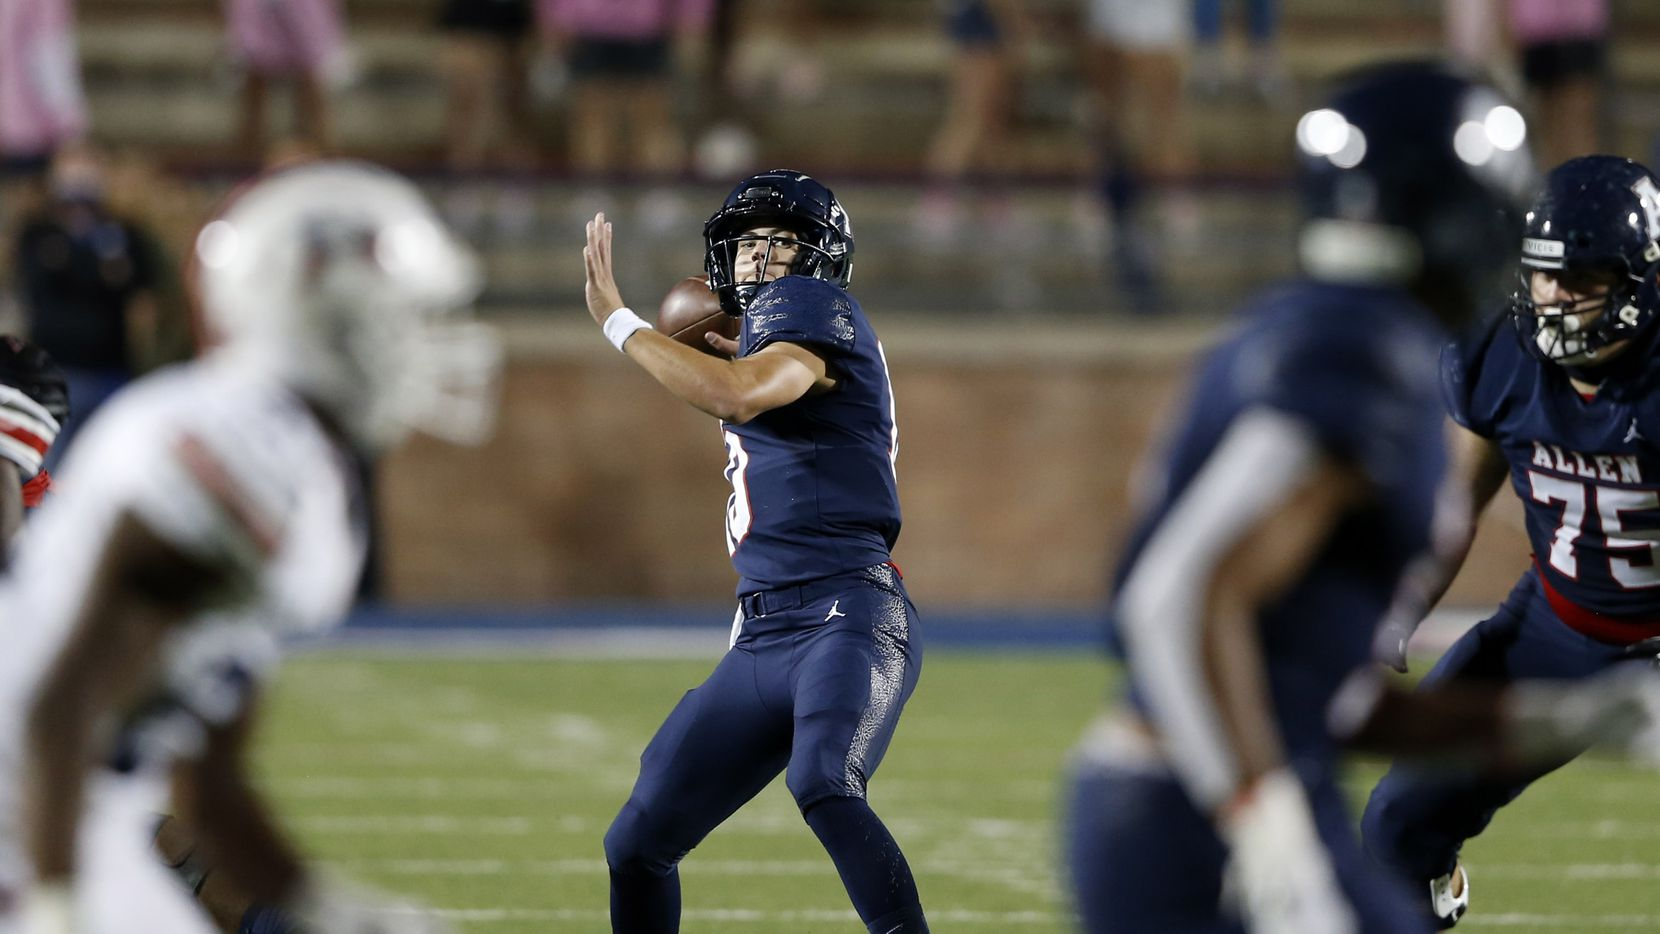 Allen's General Booty (10) gears up to pass the ball to Bryson Green (9) in a game against Humble Atascocita's during the first half of play at Eagle Stadium in Allen, Texas on Friday, October 2, 2020.